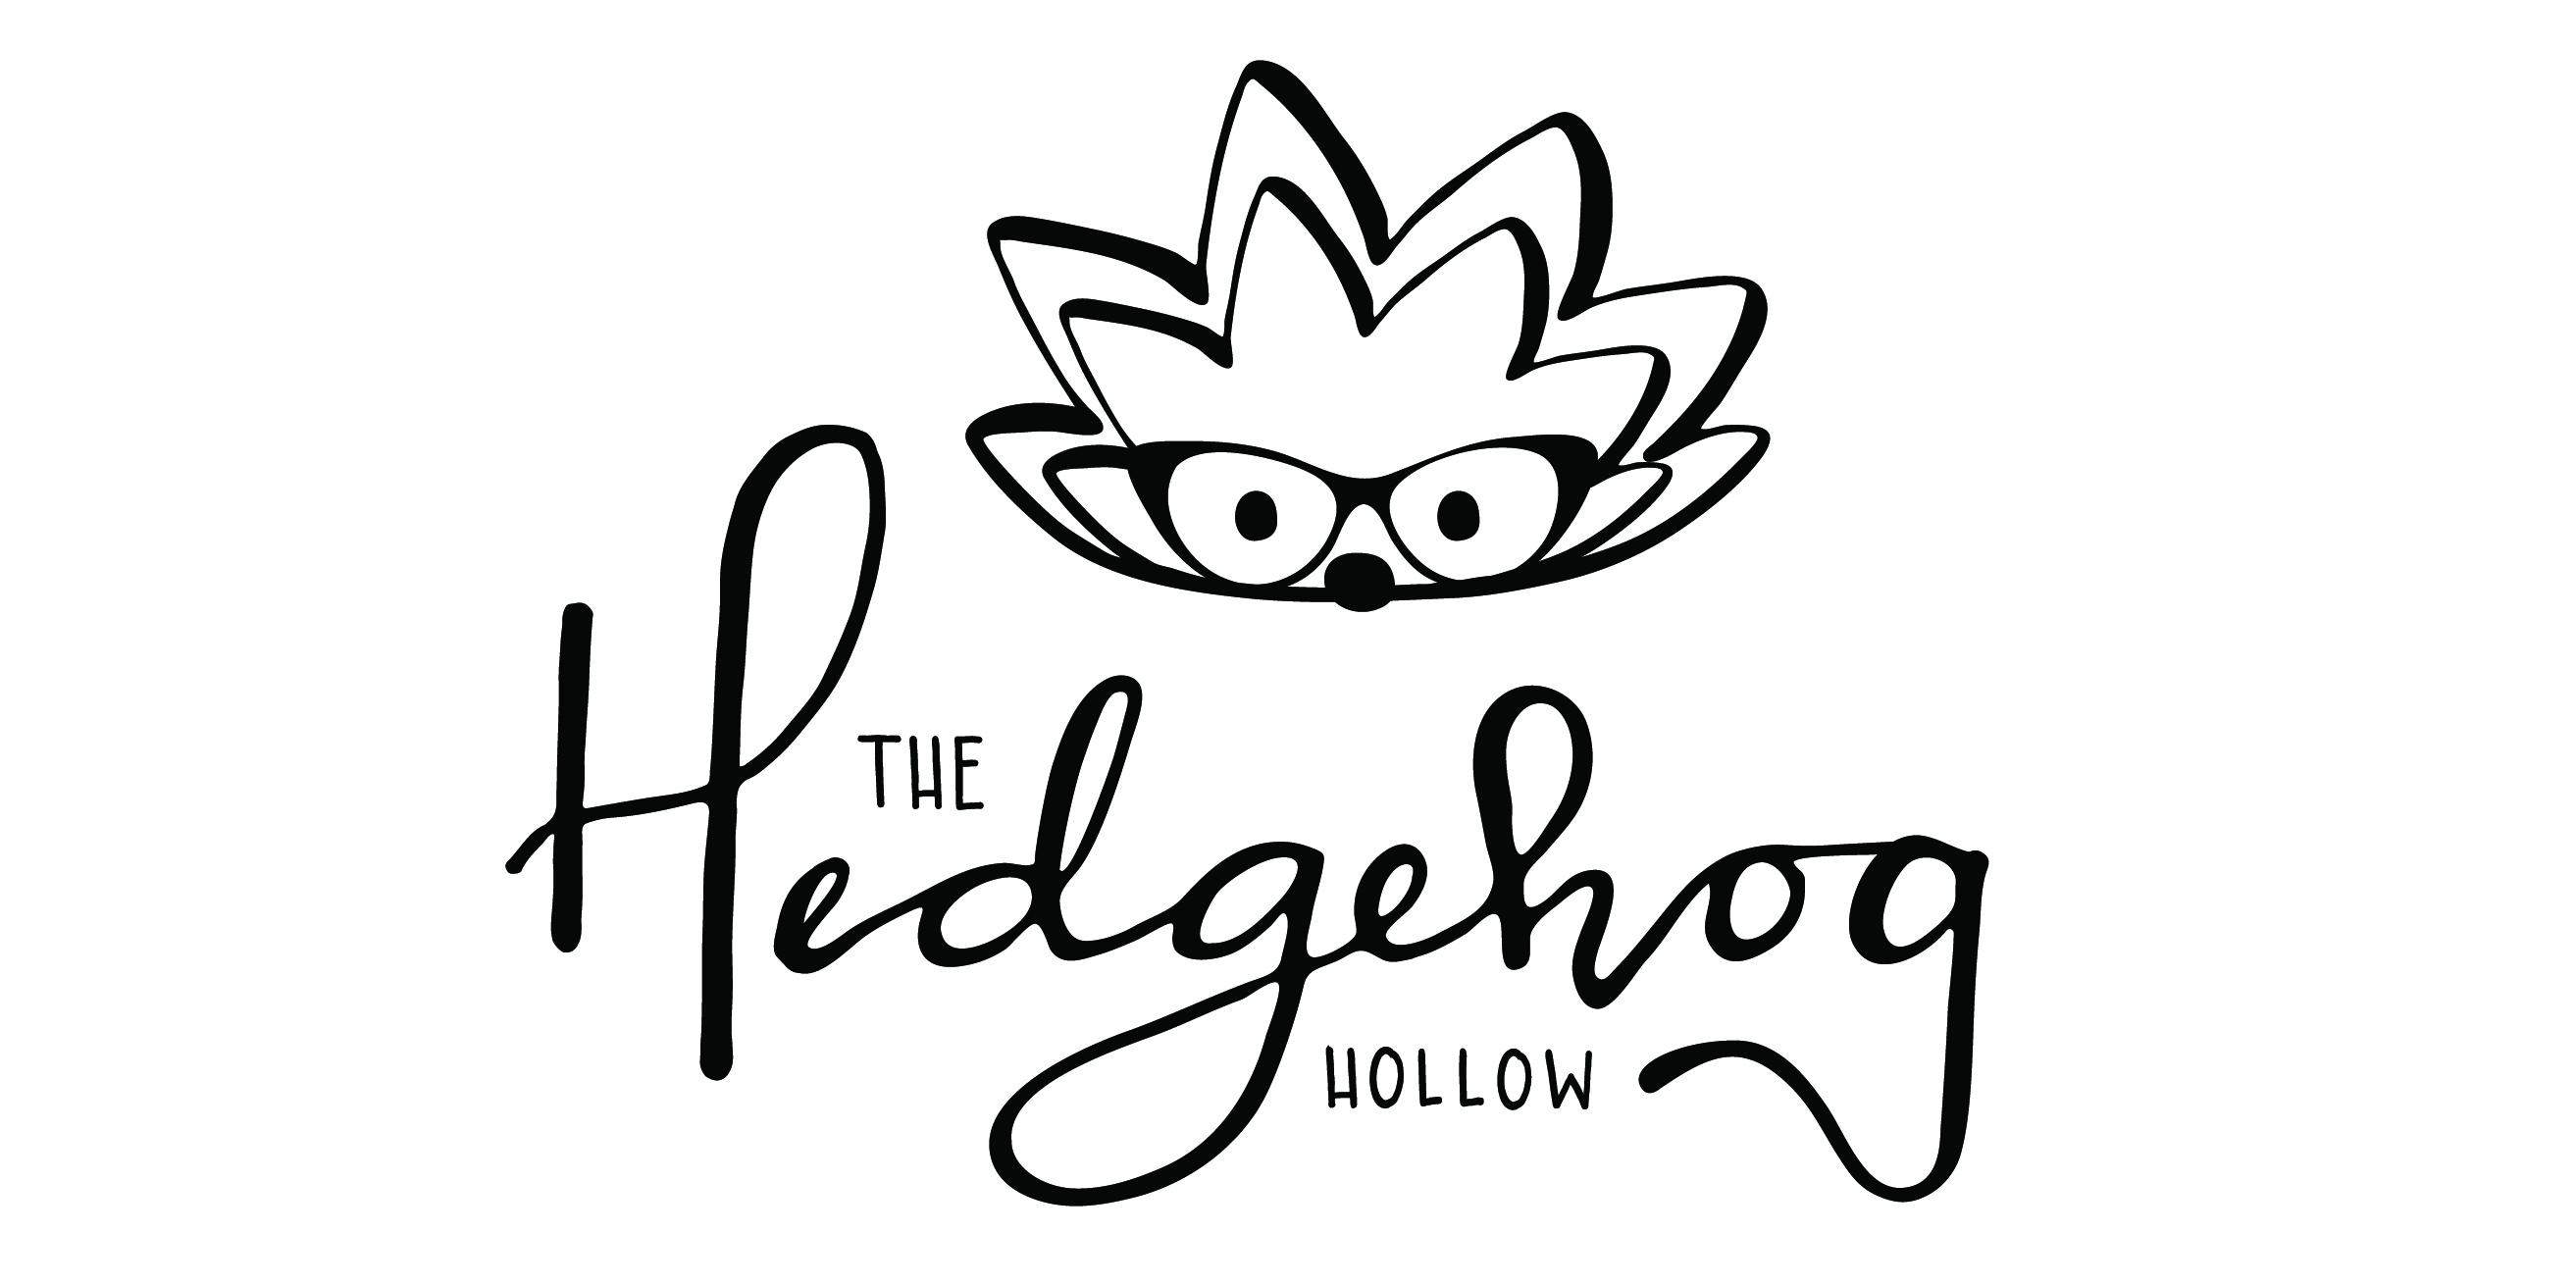 Hedgehog Hollow